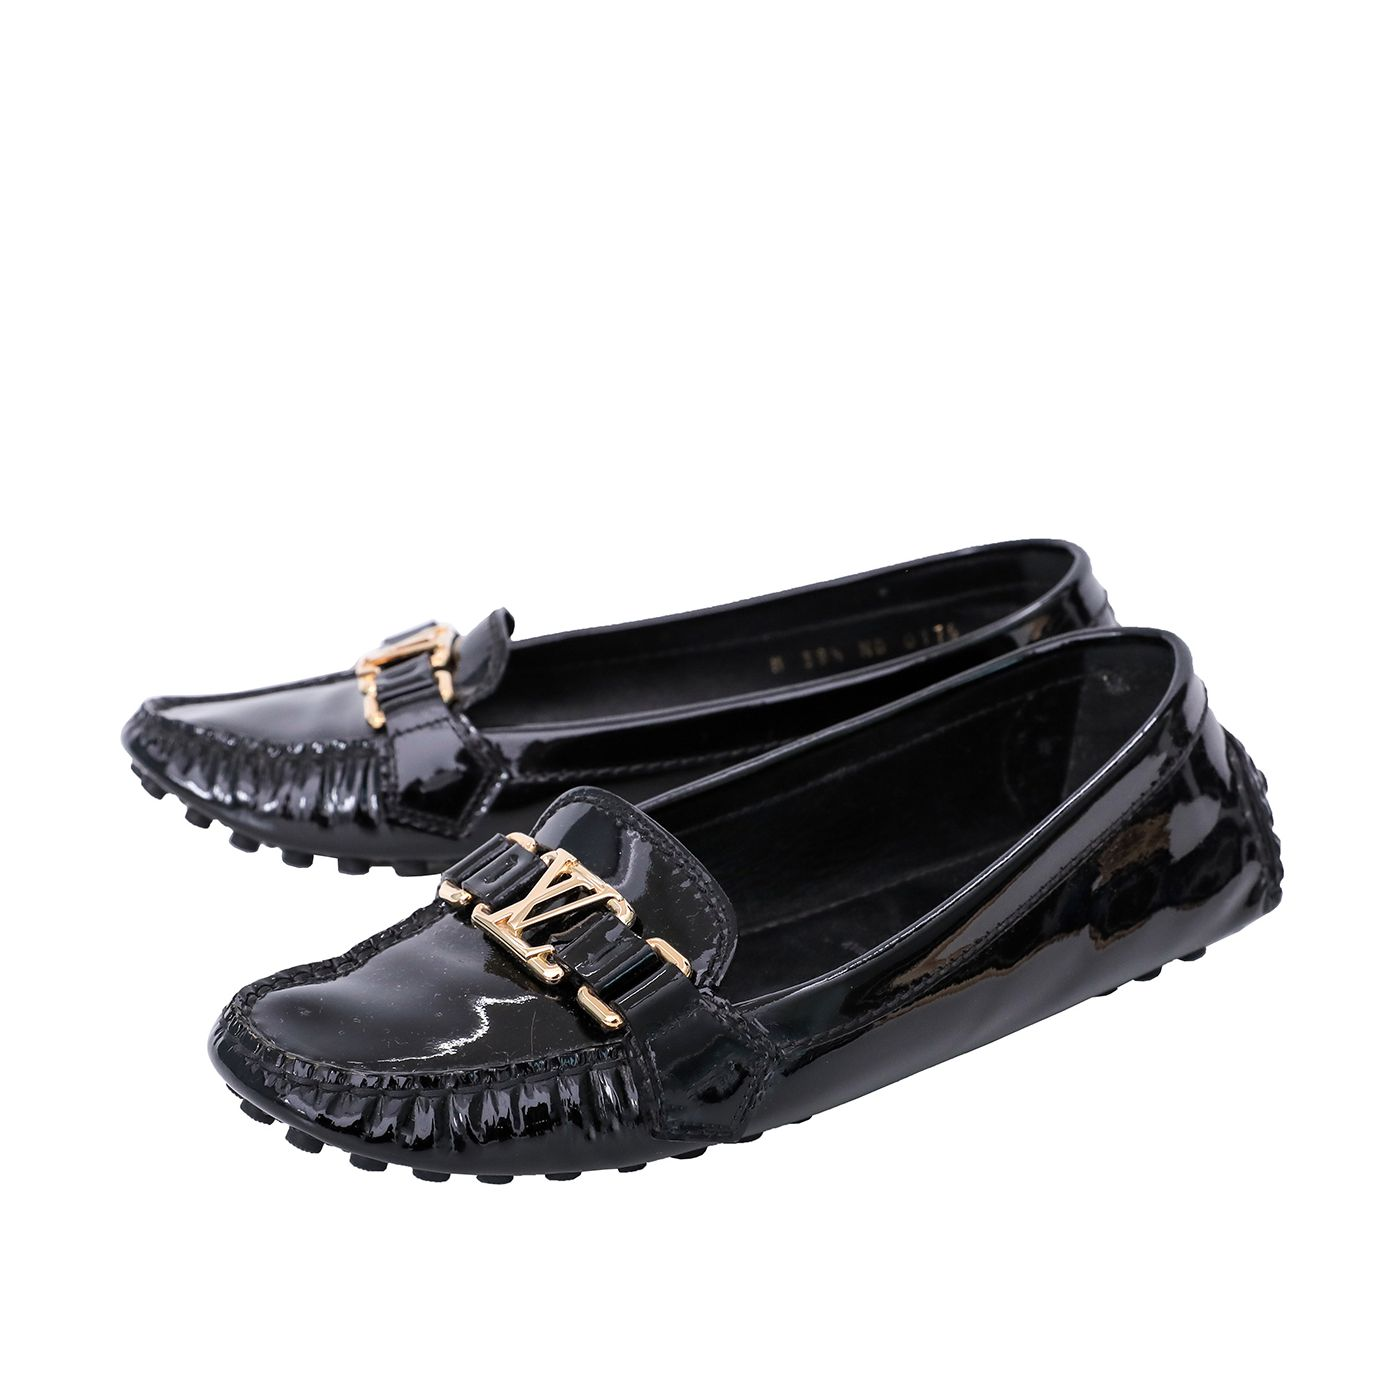 Louis Vuitton Noir Oxford Loafers 38.5